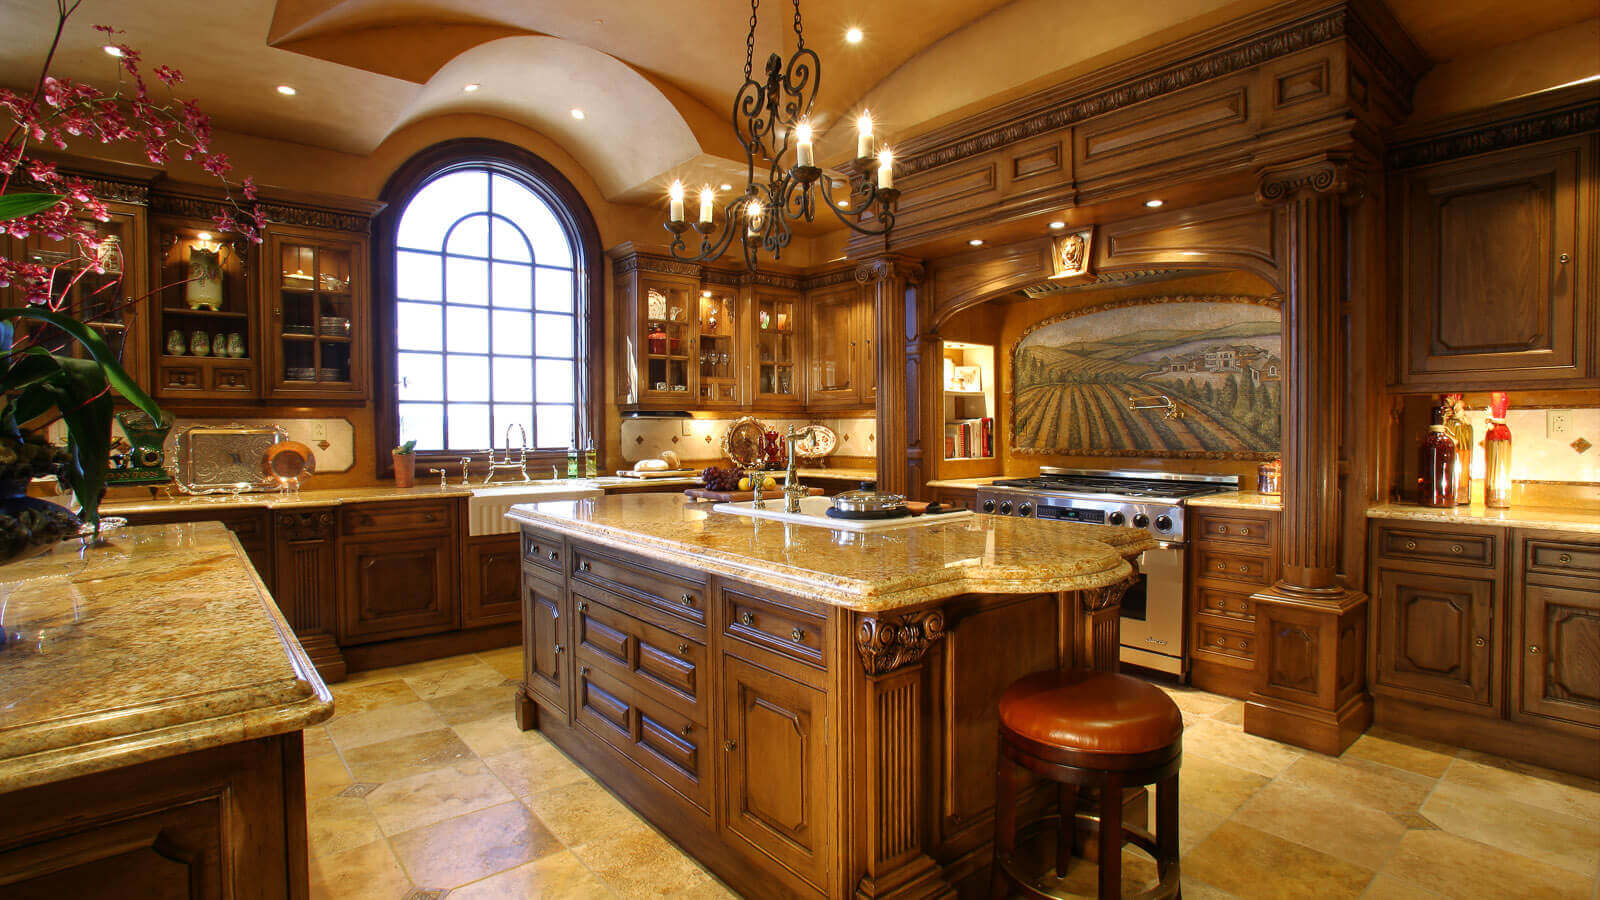 Kitchen Design Gallery Photos 74+ kitchen design gallery – the ultimate solution to kitchen